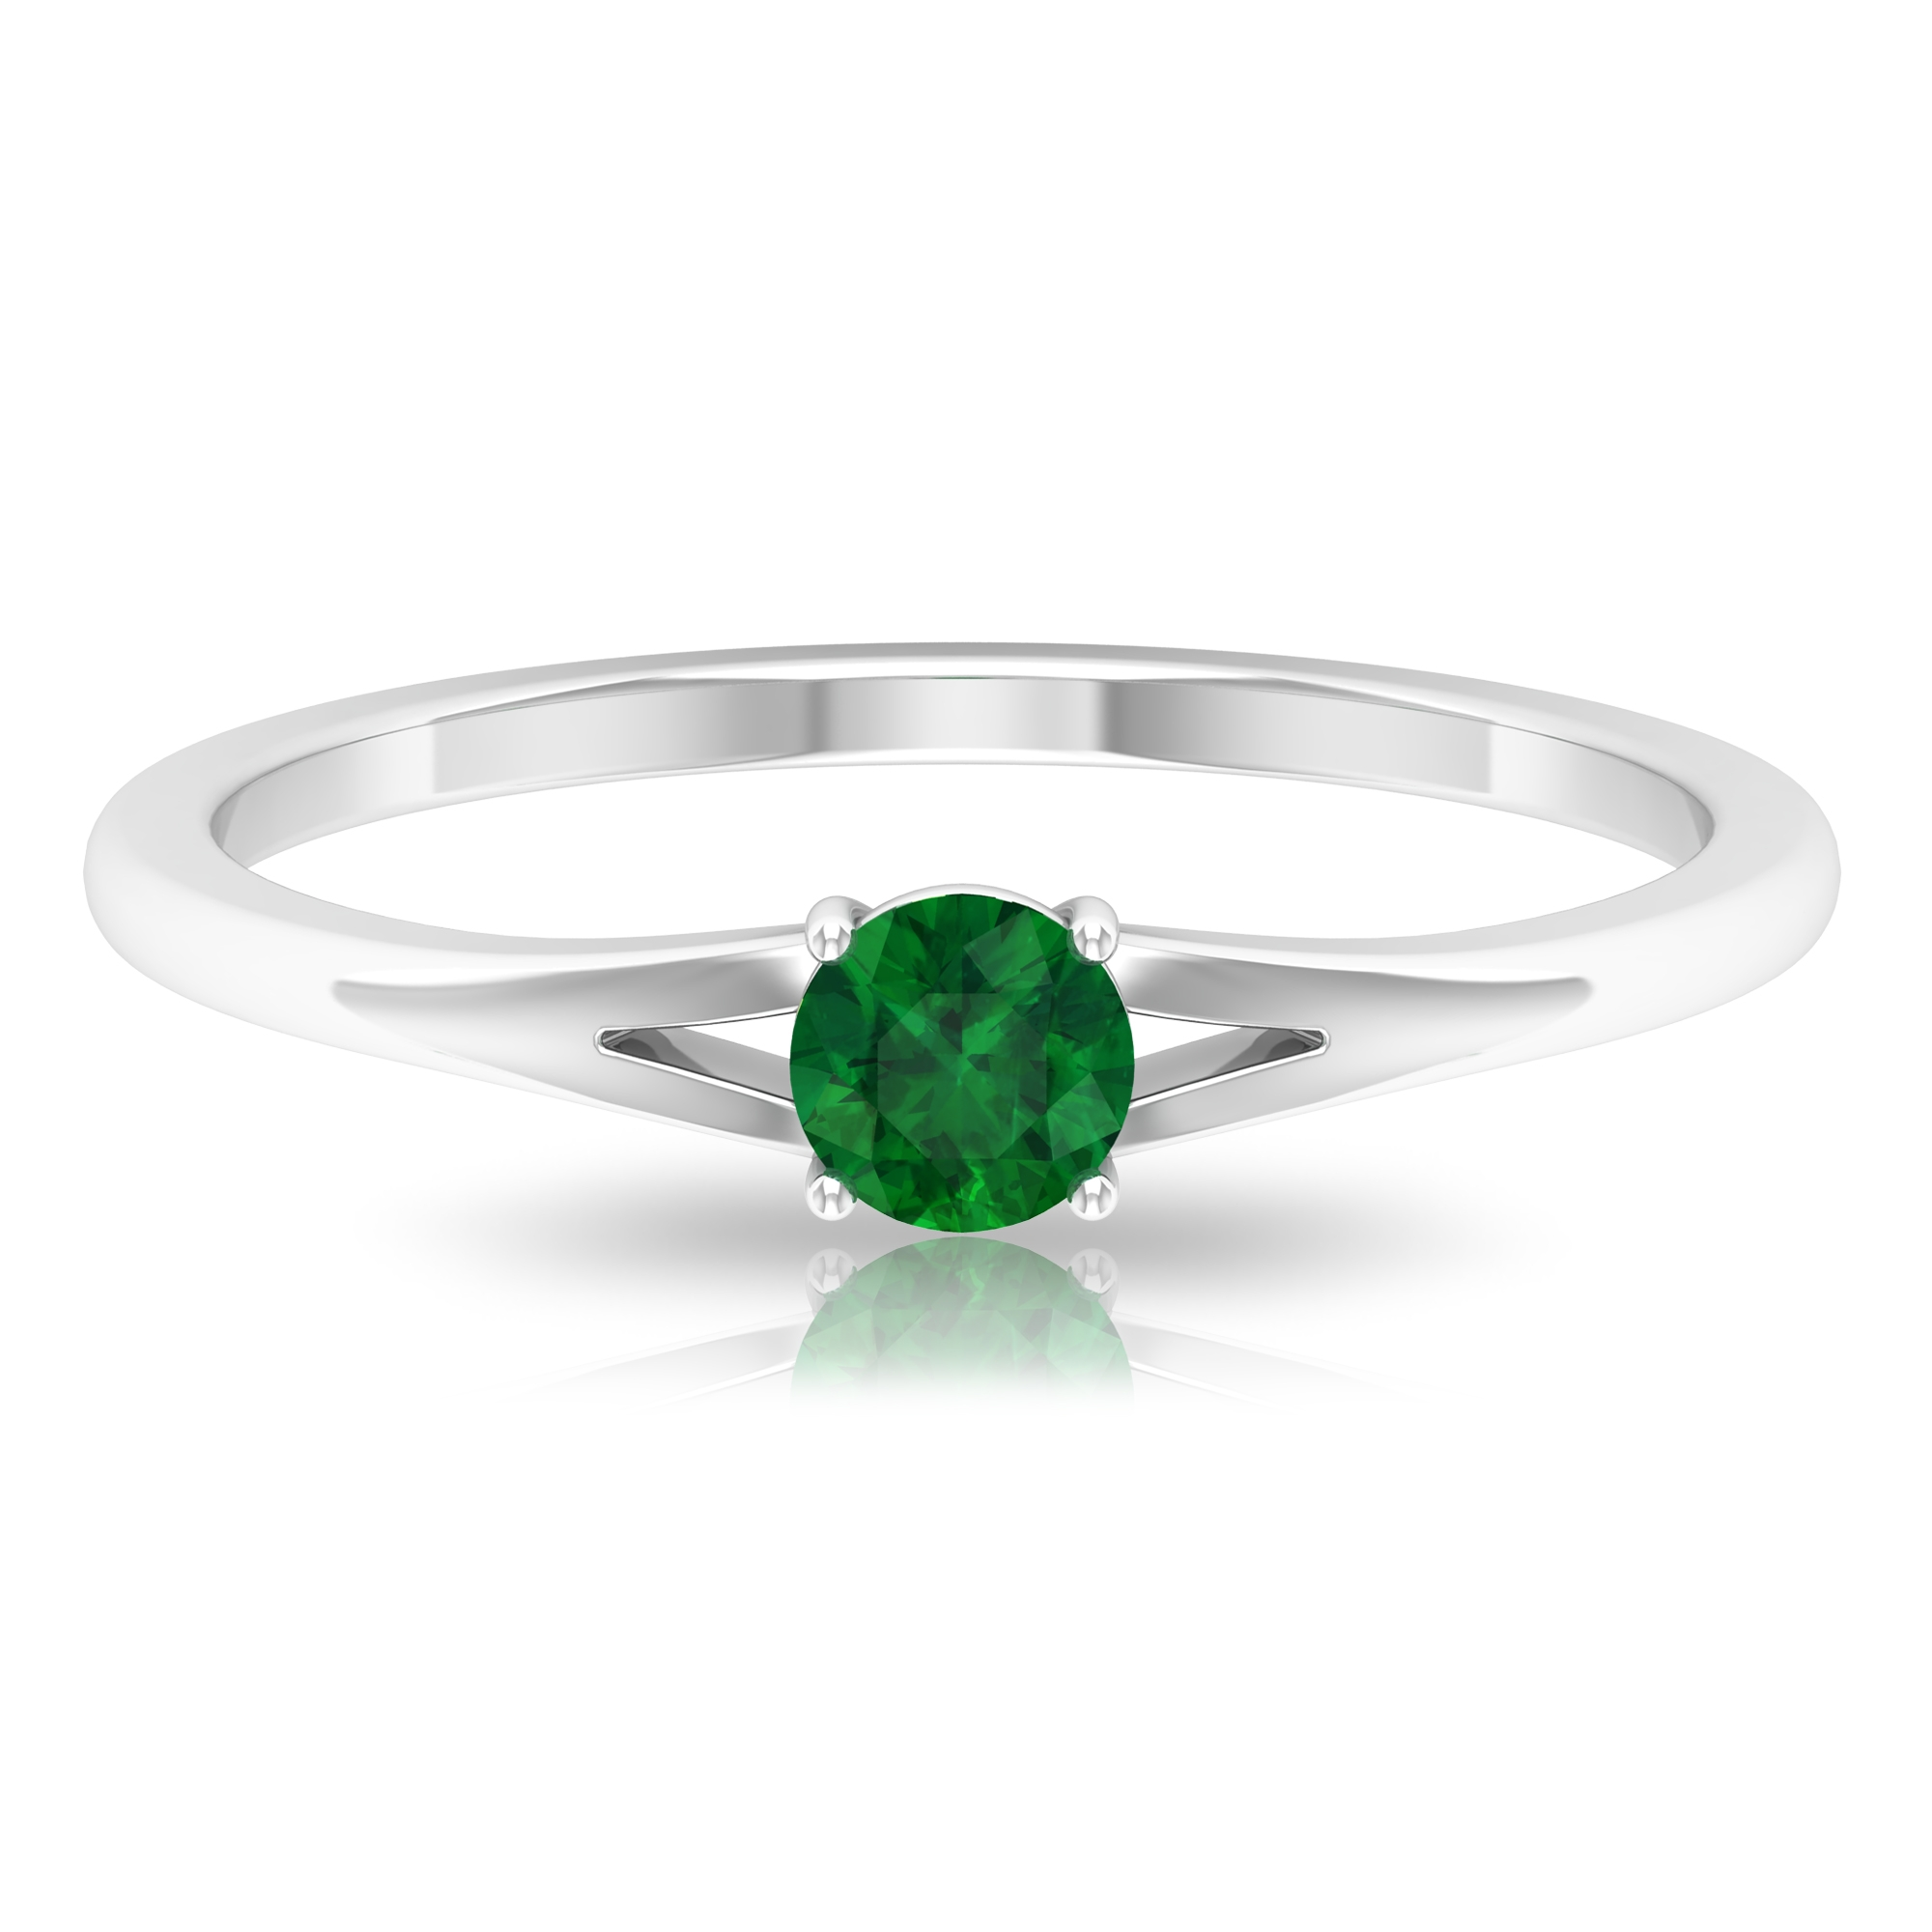 4 MM Round Cut Emerald Solitaire Ring in 4 Prong Setting with Split Shank